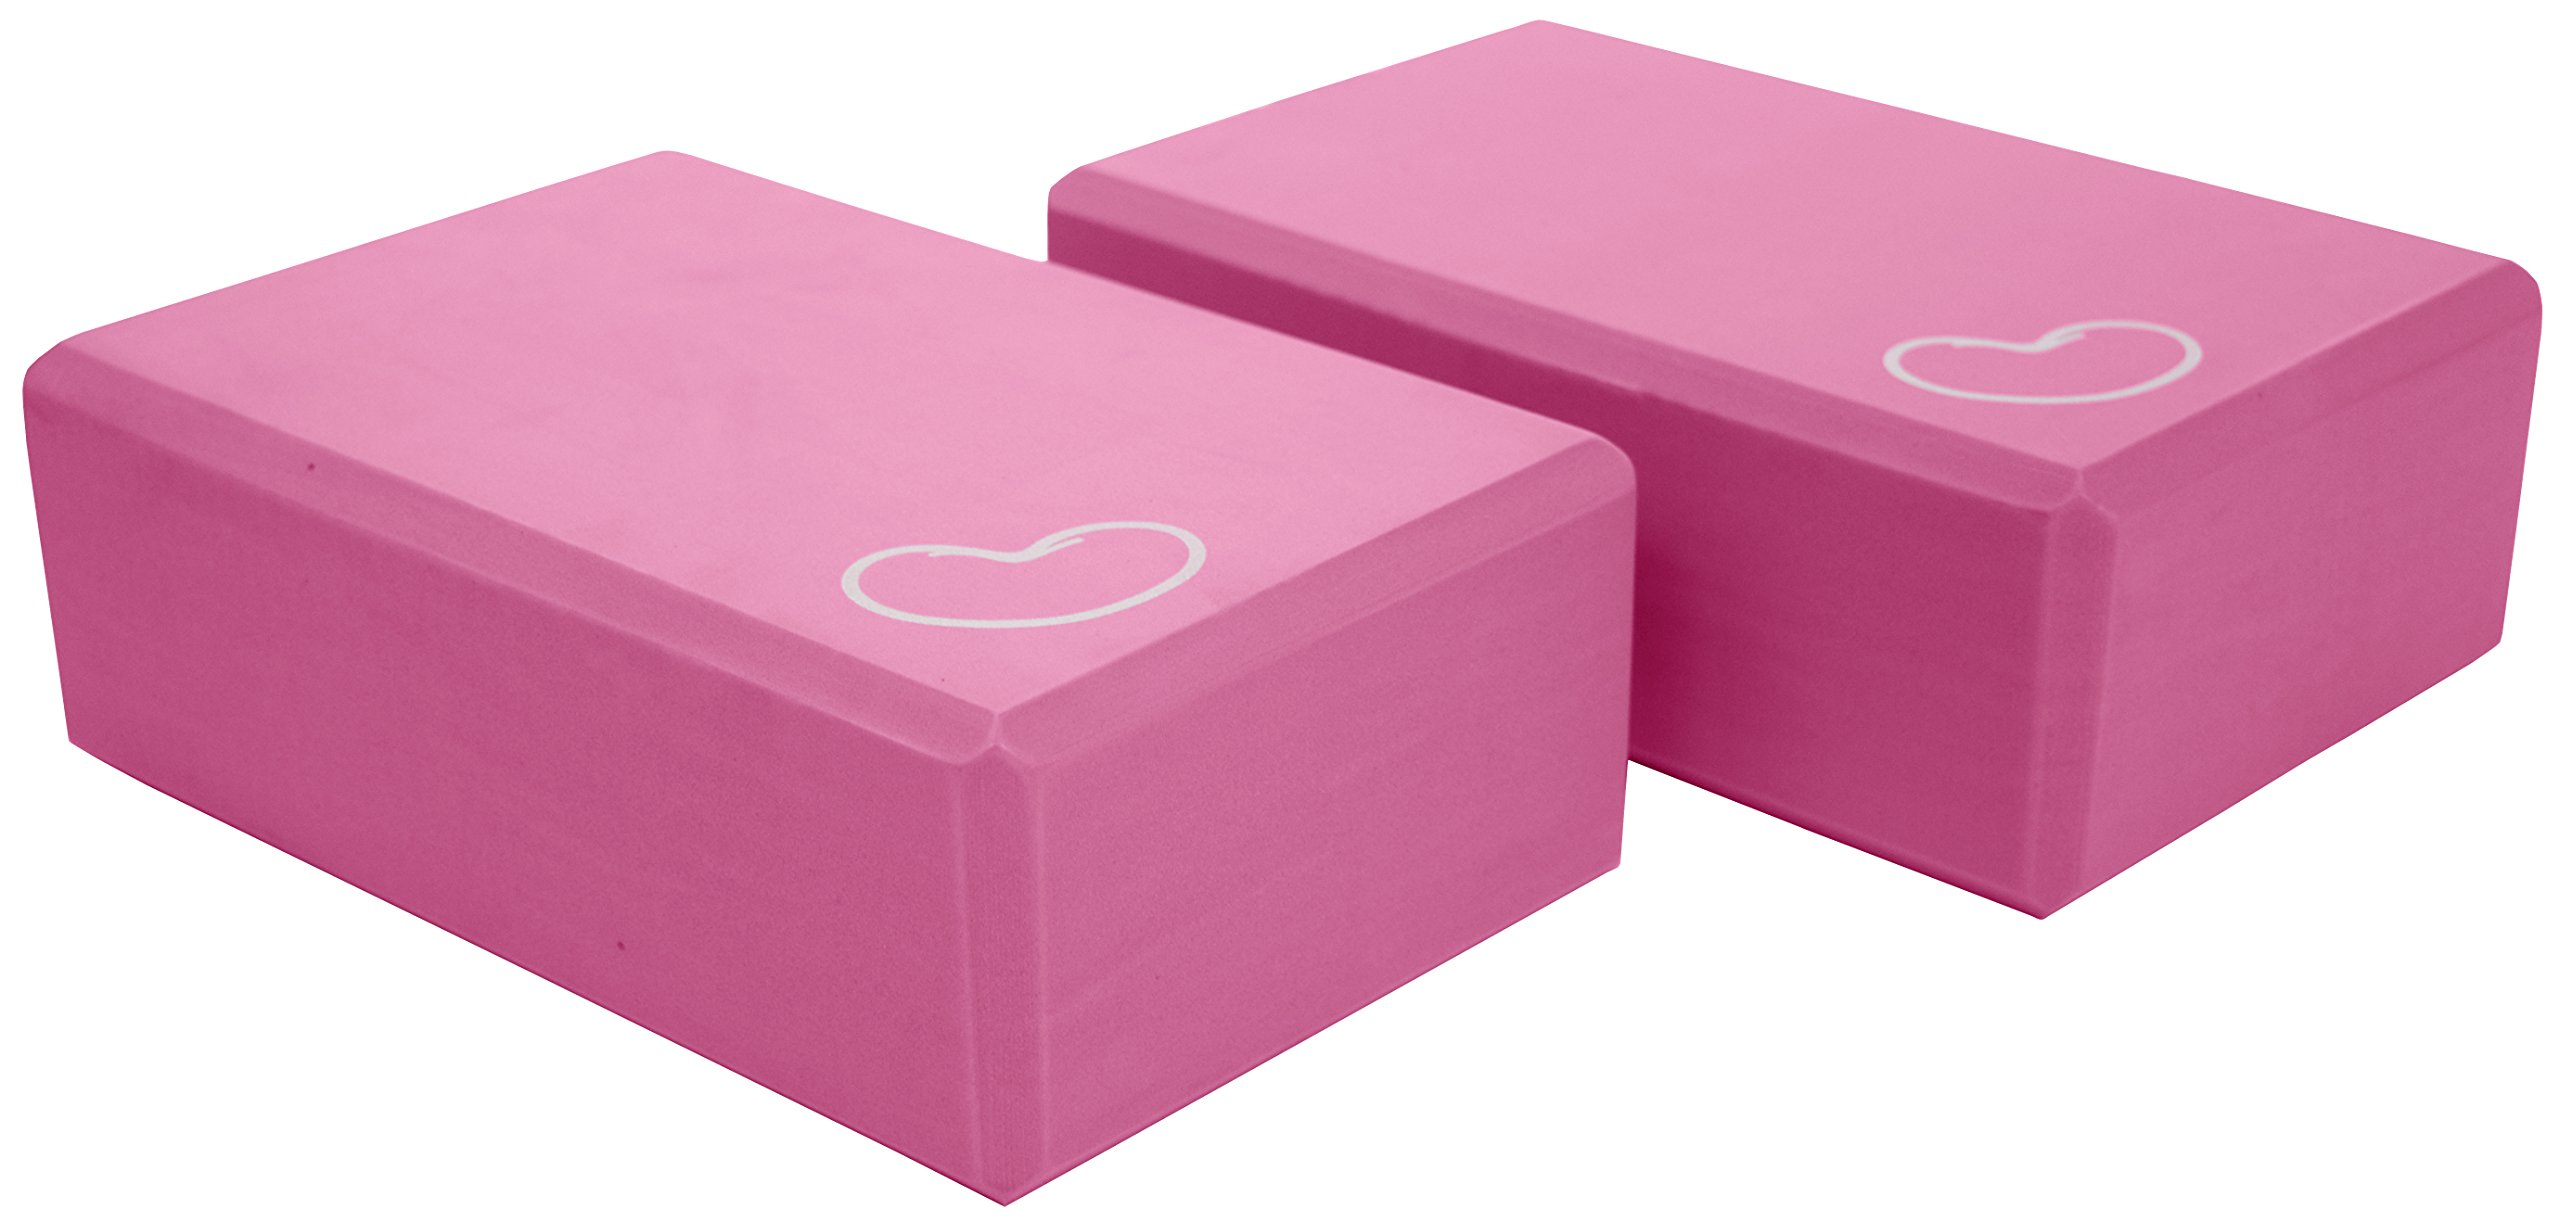 Bean Products Yoga Block 1 or 2 pack 3 in. x 6 in. x 9 in. Larger Size 4 colors by PINK - 2 Pack